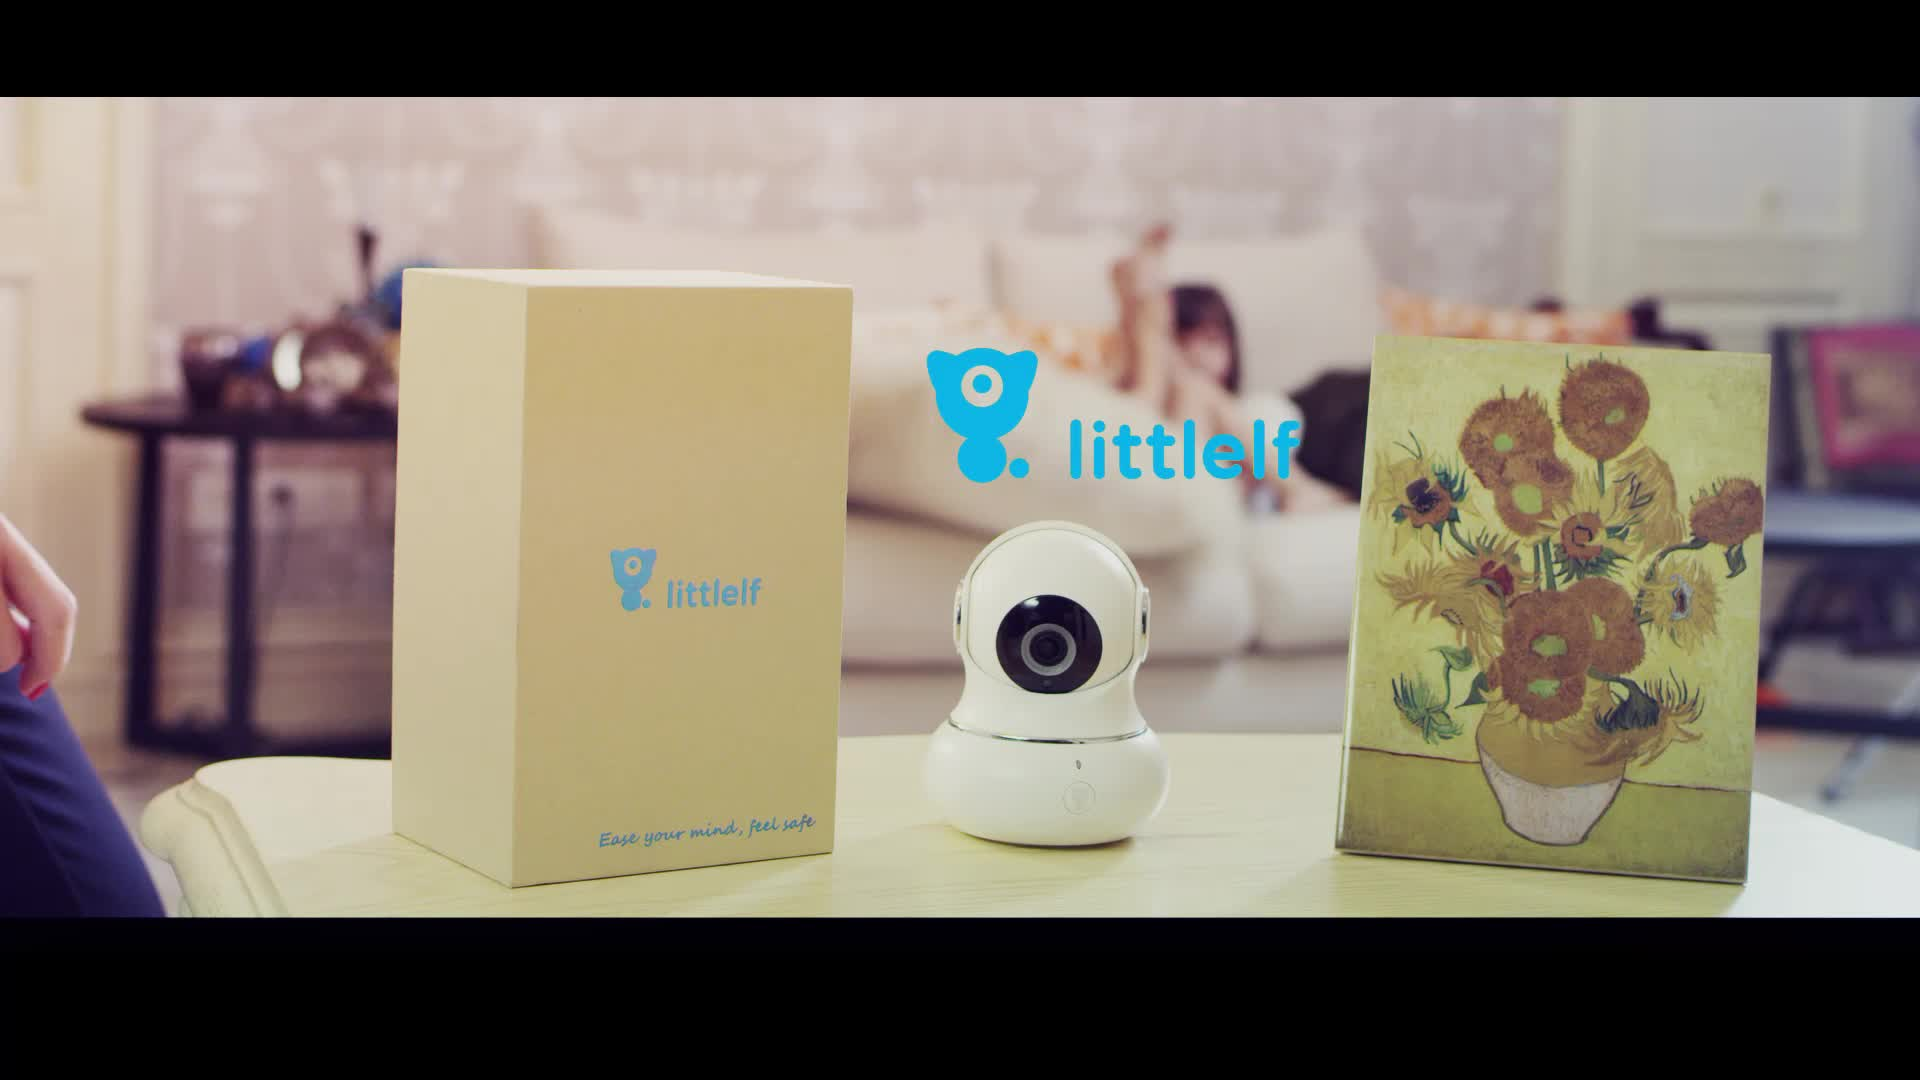 2018 New Arrival Littlelf Cheap Two Way Audio Pan Tilt Wireless IP Camera Wifi Security Camera with Remote veiwing App